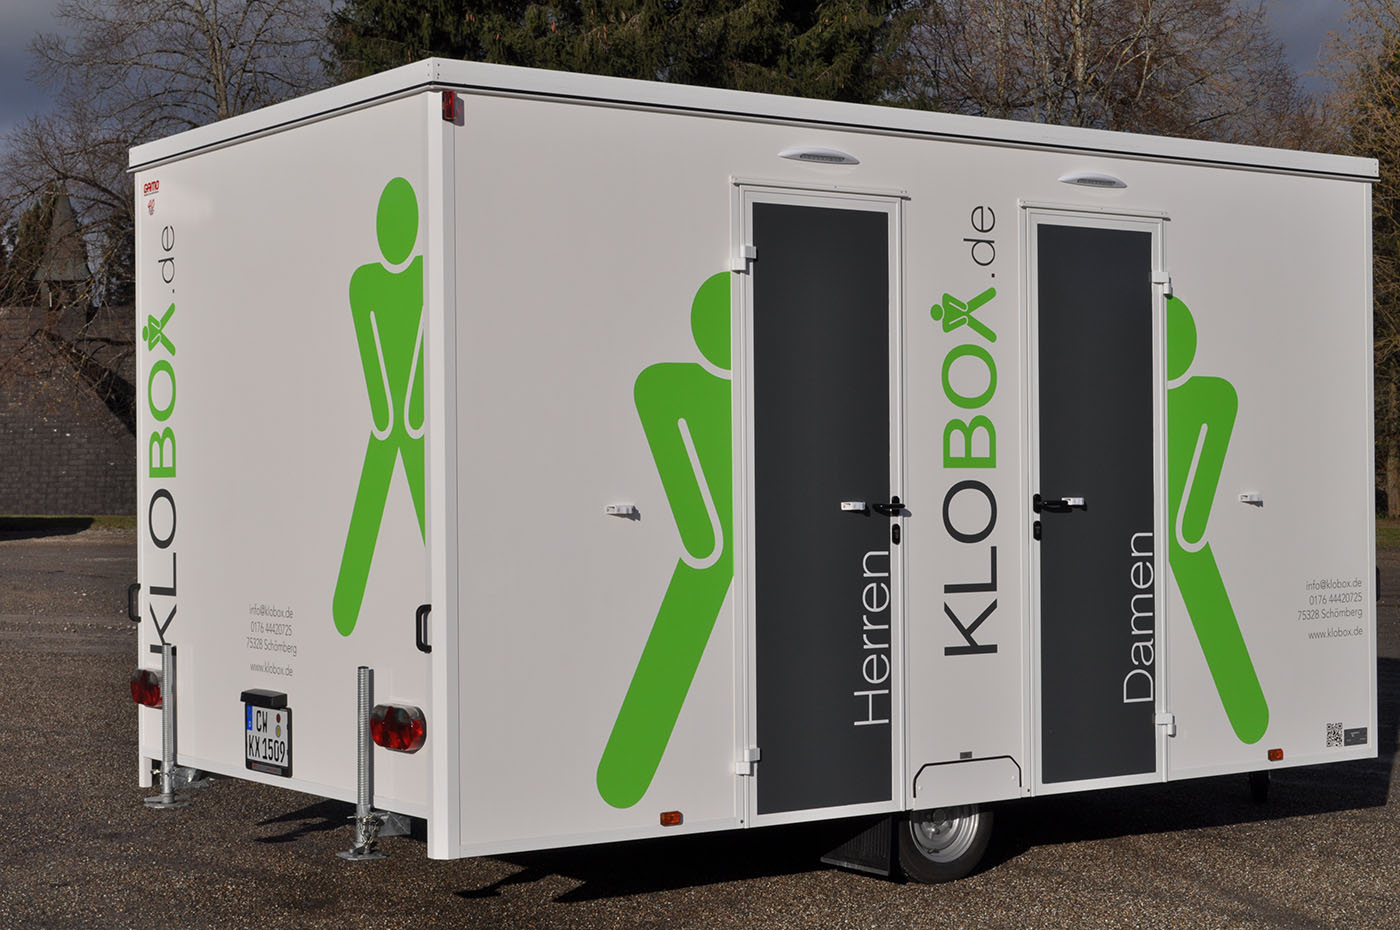 Toilettenwagen - klobox.de #02